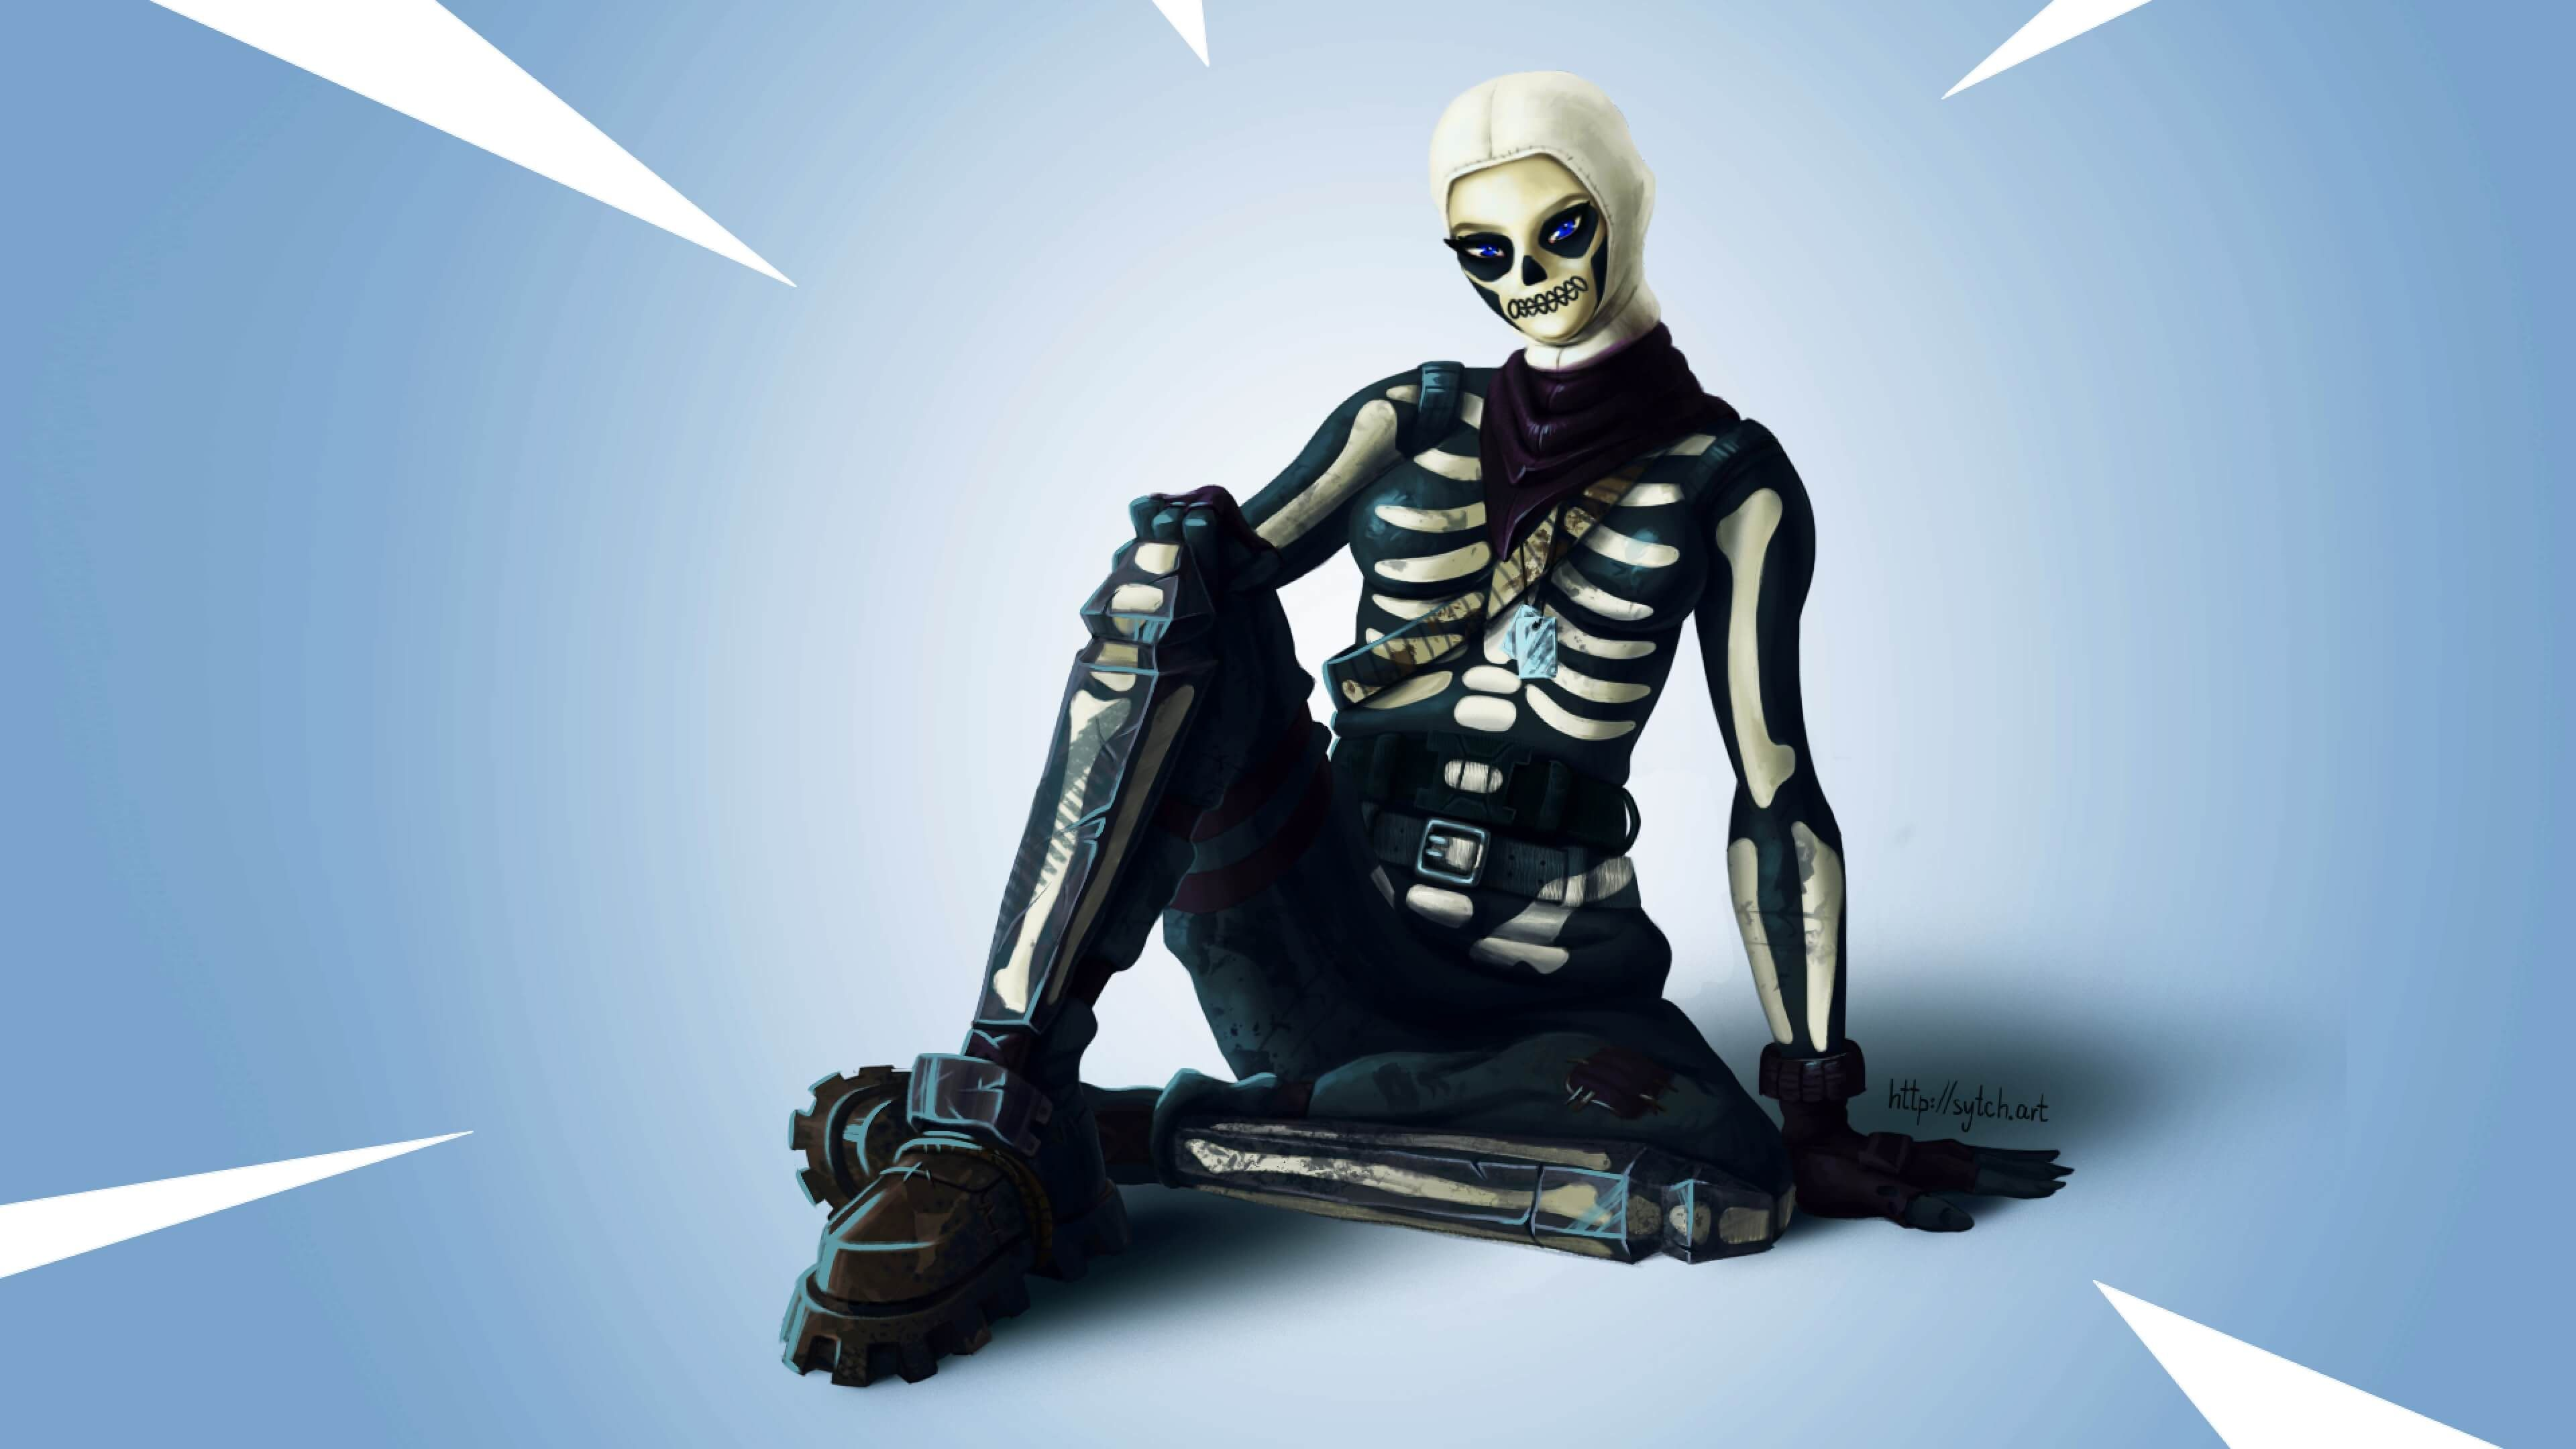 Pin By Wallpaperplex On Fortnite Skull Trooper Wallpapers